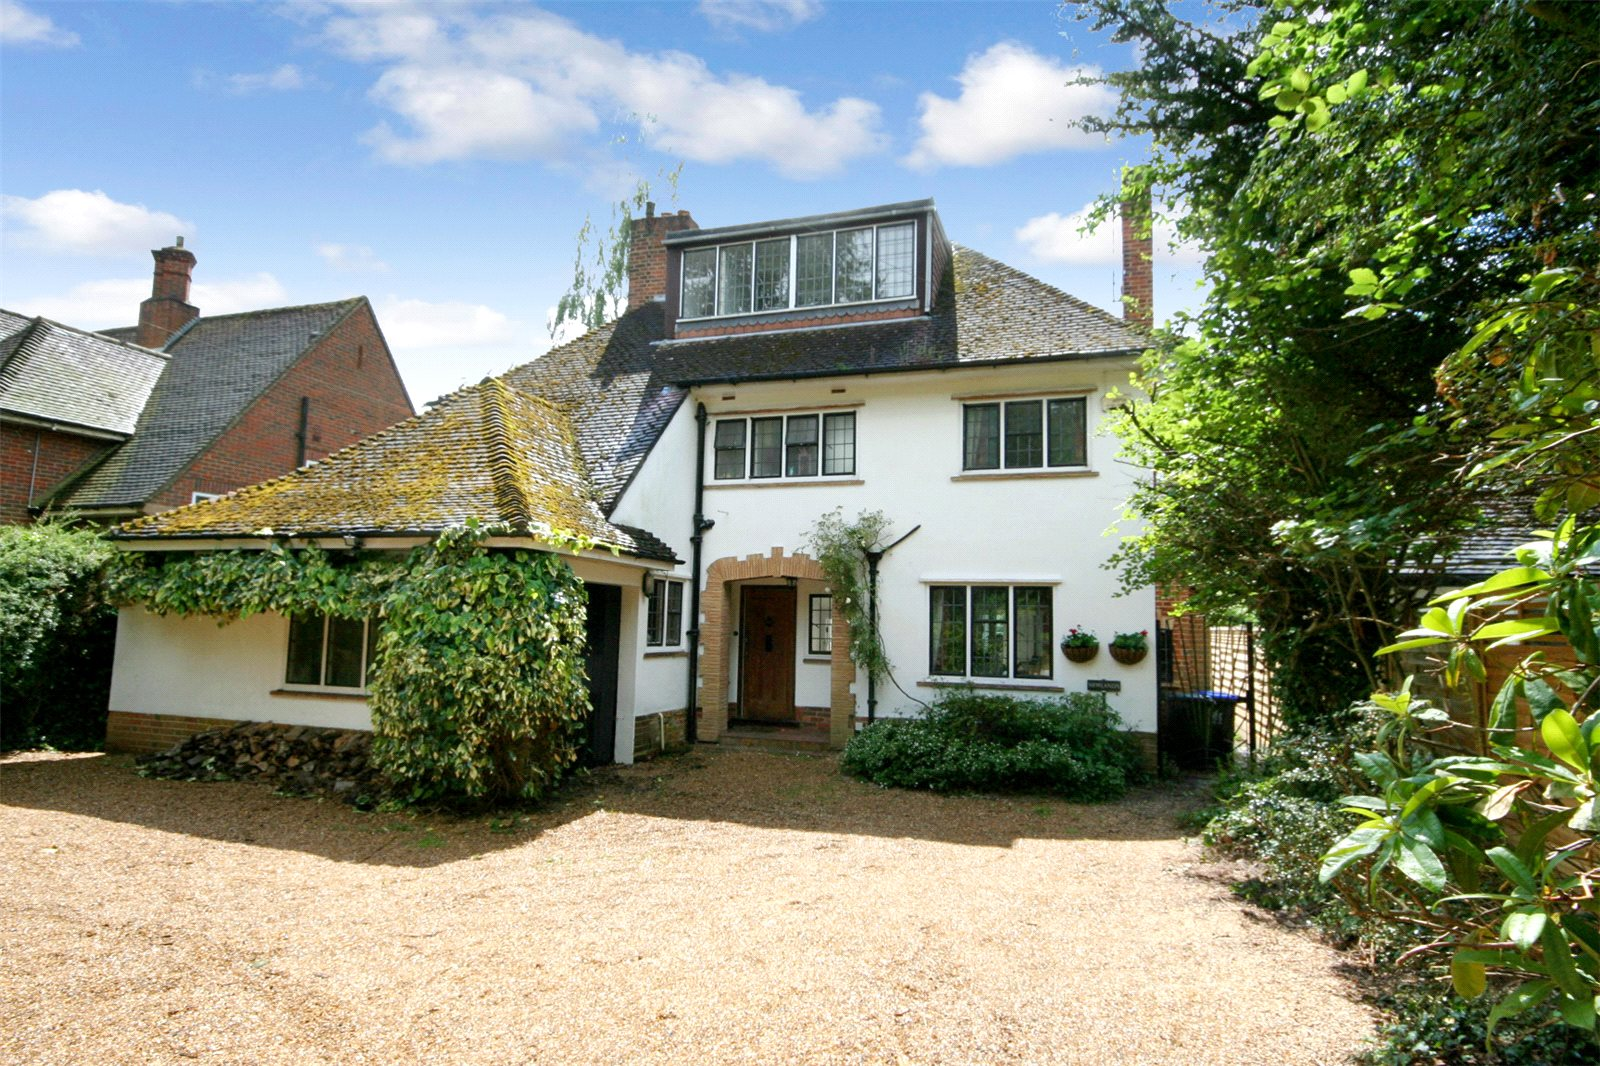 Maison unifamiliale pour l Vente à Oxford Road, Gerrards Cross, Buckinghamshire, SL9 Gerrards Cross, Angleterre